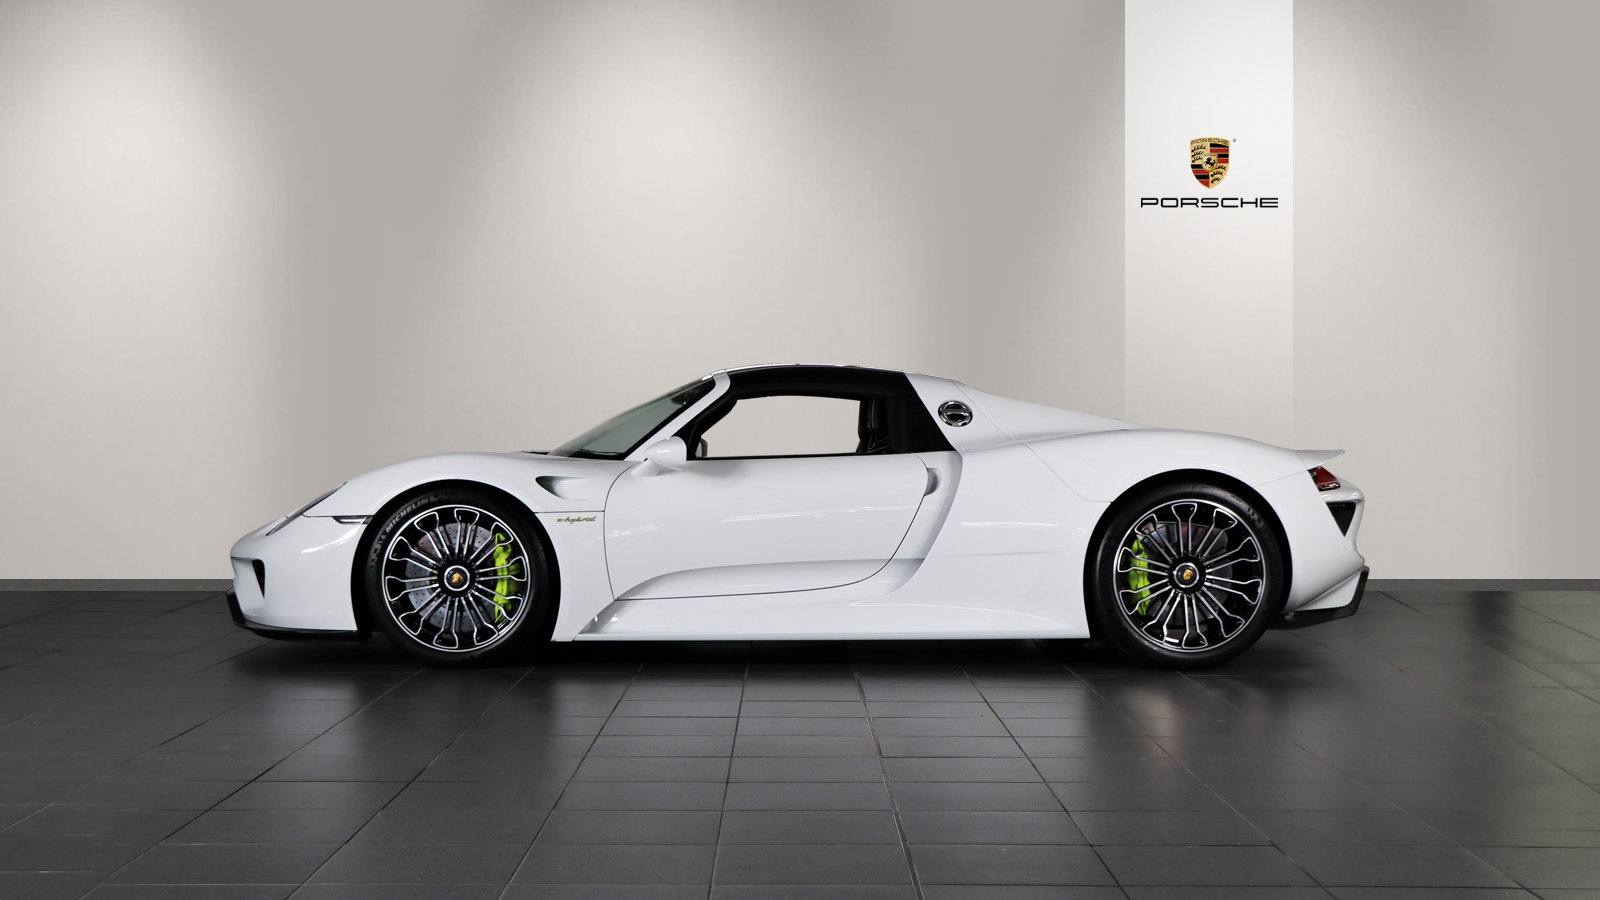 2015 Porsche 918 Spyder 2dr PDK For Sale (picture 3 of 6)